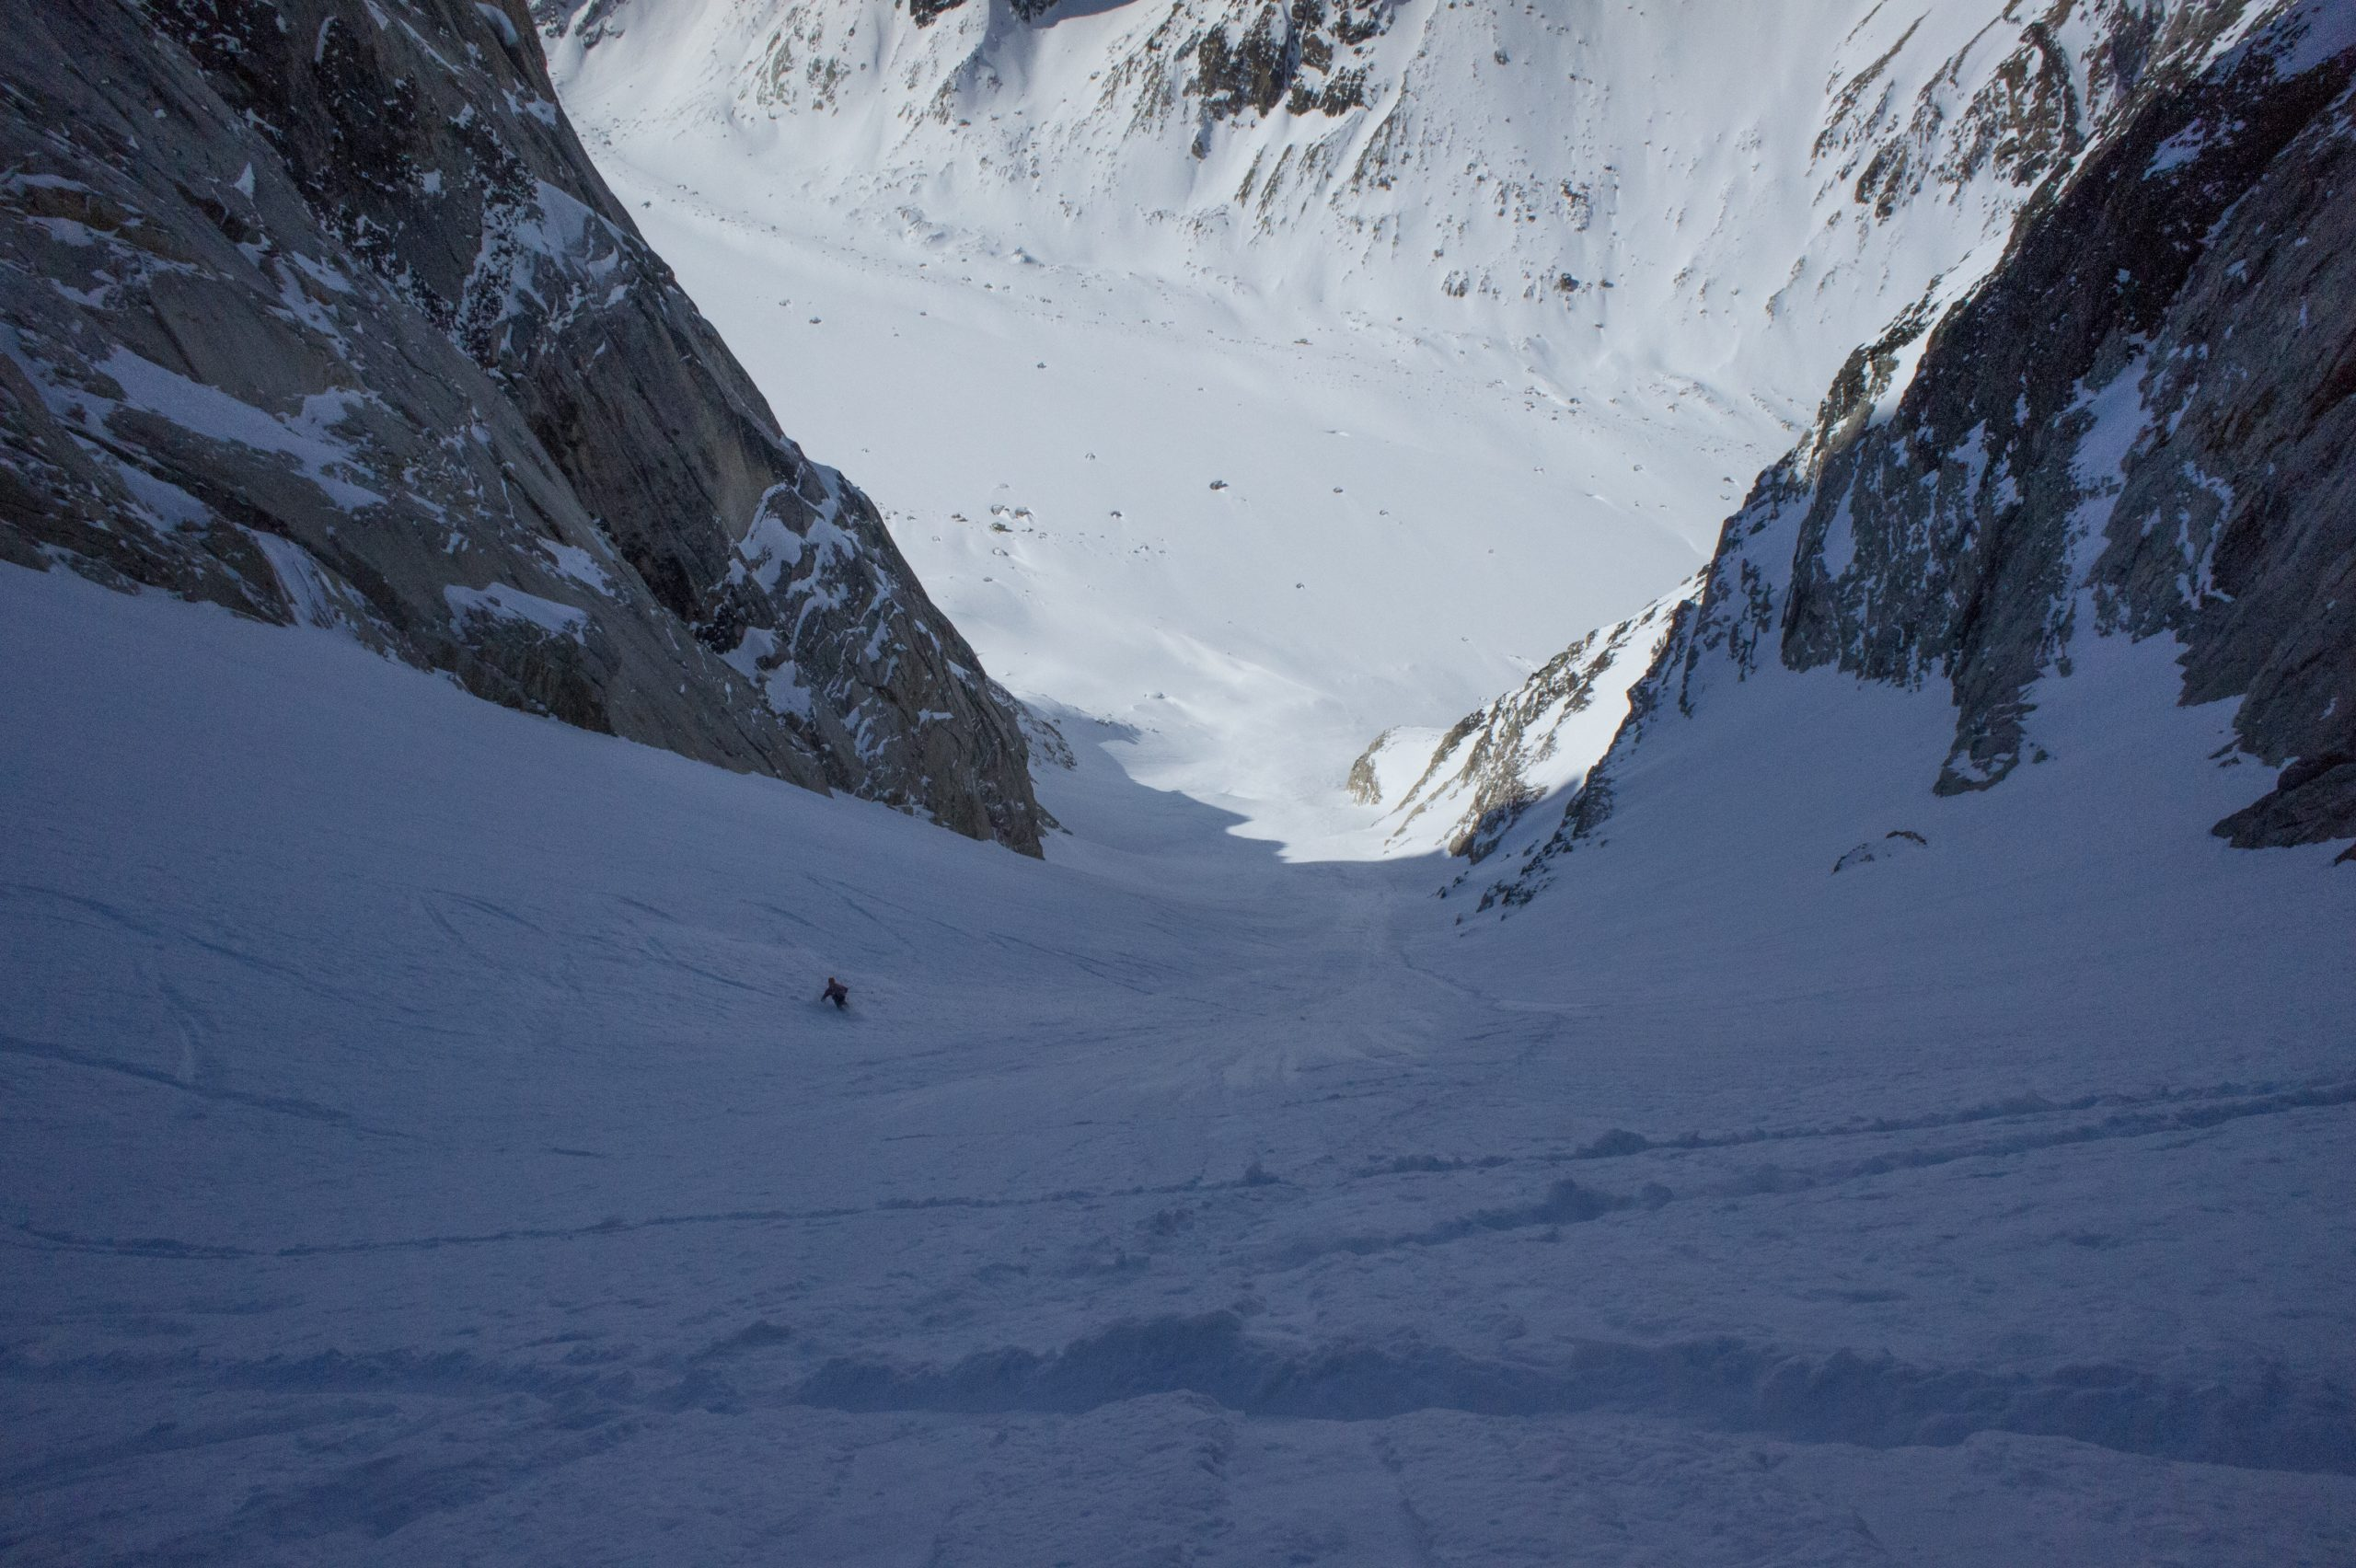 """Ty skis """"keeping the faith"""" first expedition revelations 2013-ski-expedition"""